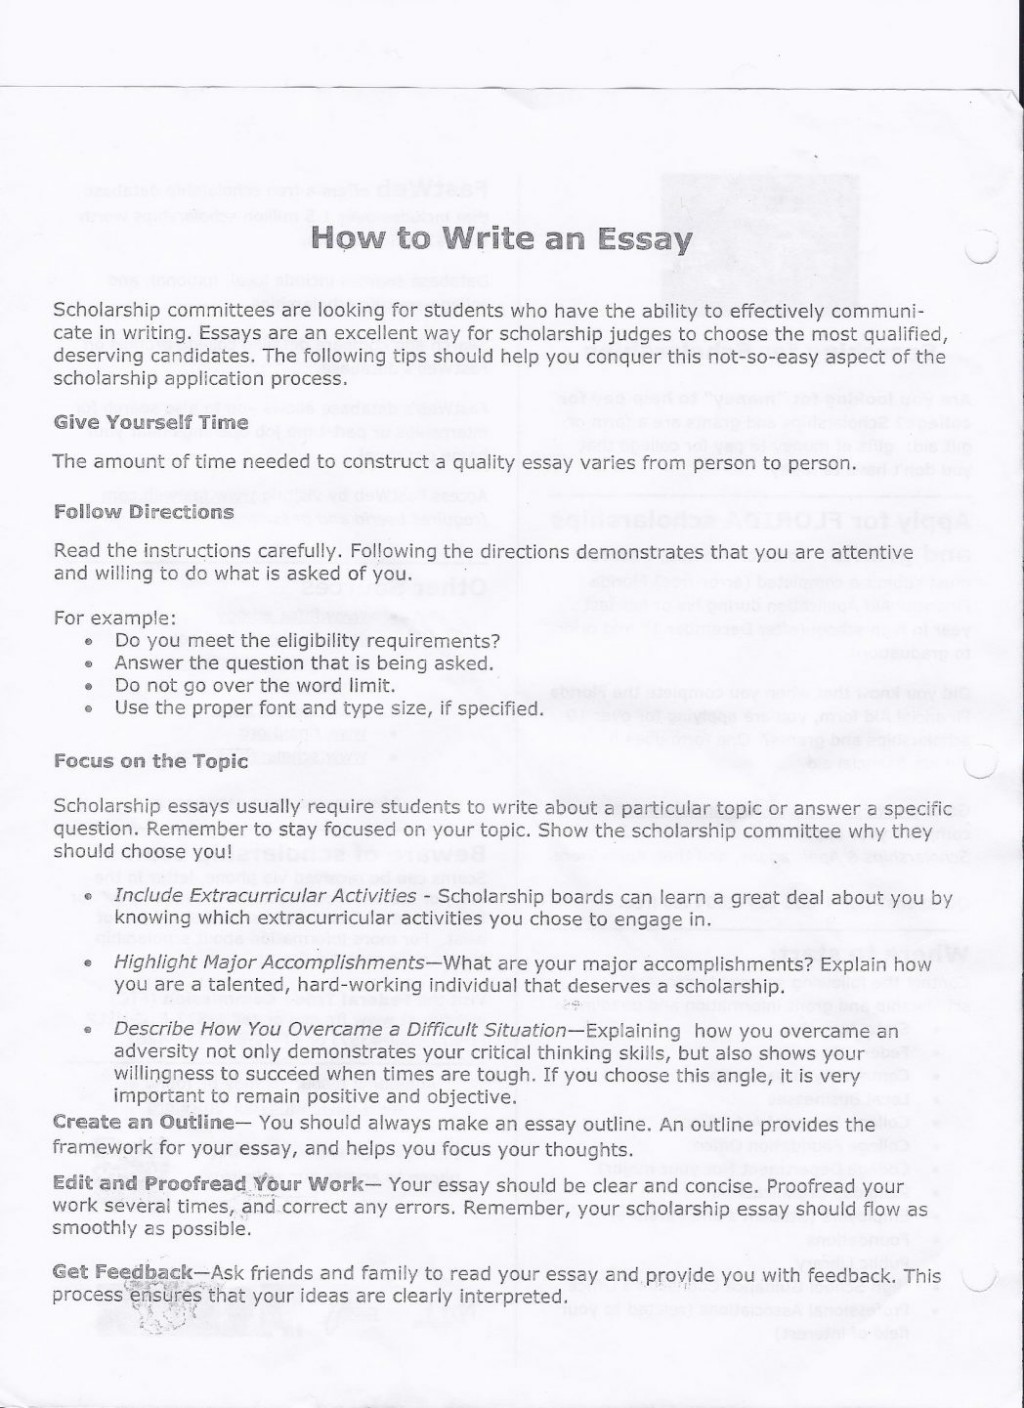 018 Type An Essay Online For Free Example Essays Write College Cover Letter Different Types Purchase Sell Course Help Editing Read Tutor Stirring Where Can I Large